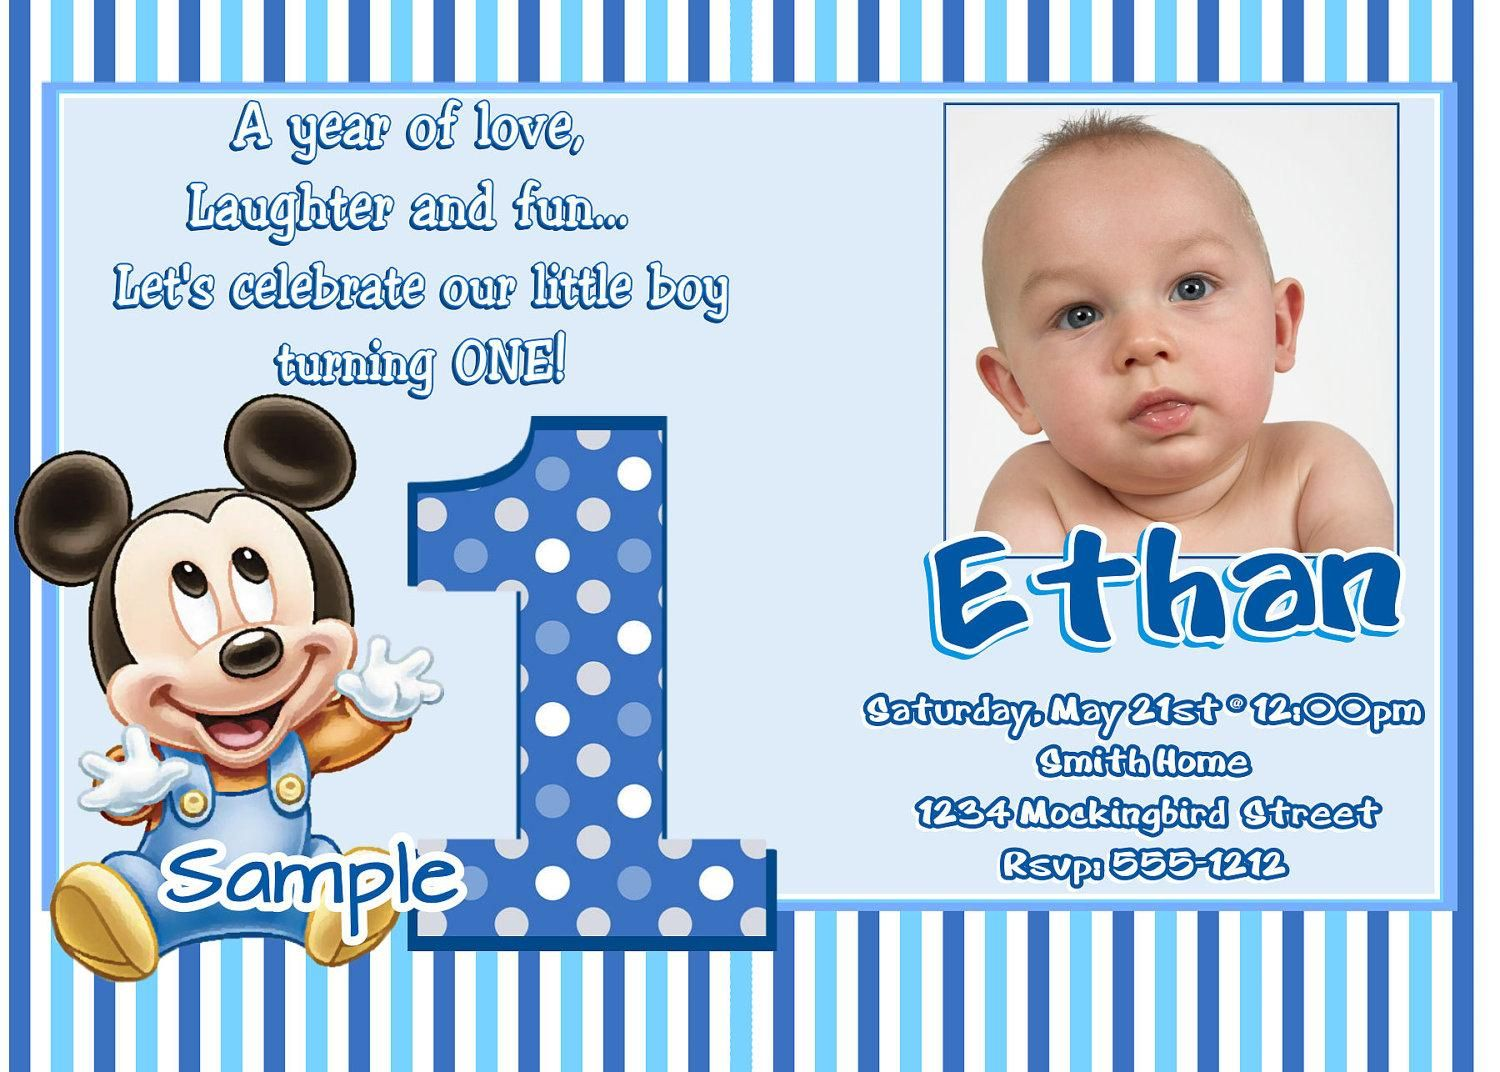 Awesome Best First Birthday Invitation Wording Designs Birthday Invitation Card Template First Birthday Invitation Cards 1st Birthday Invitations